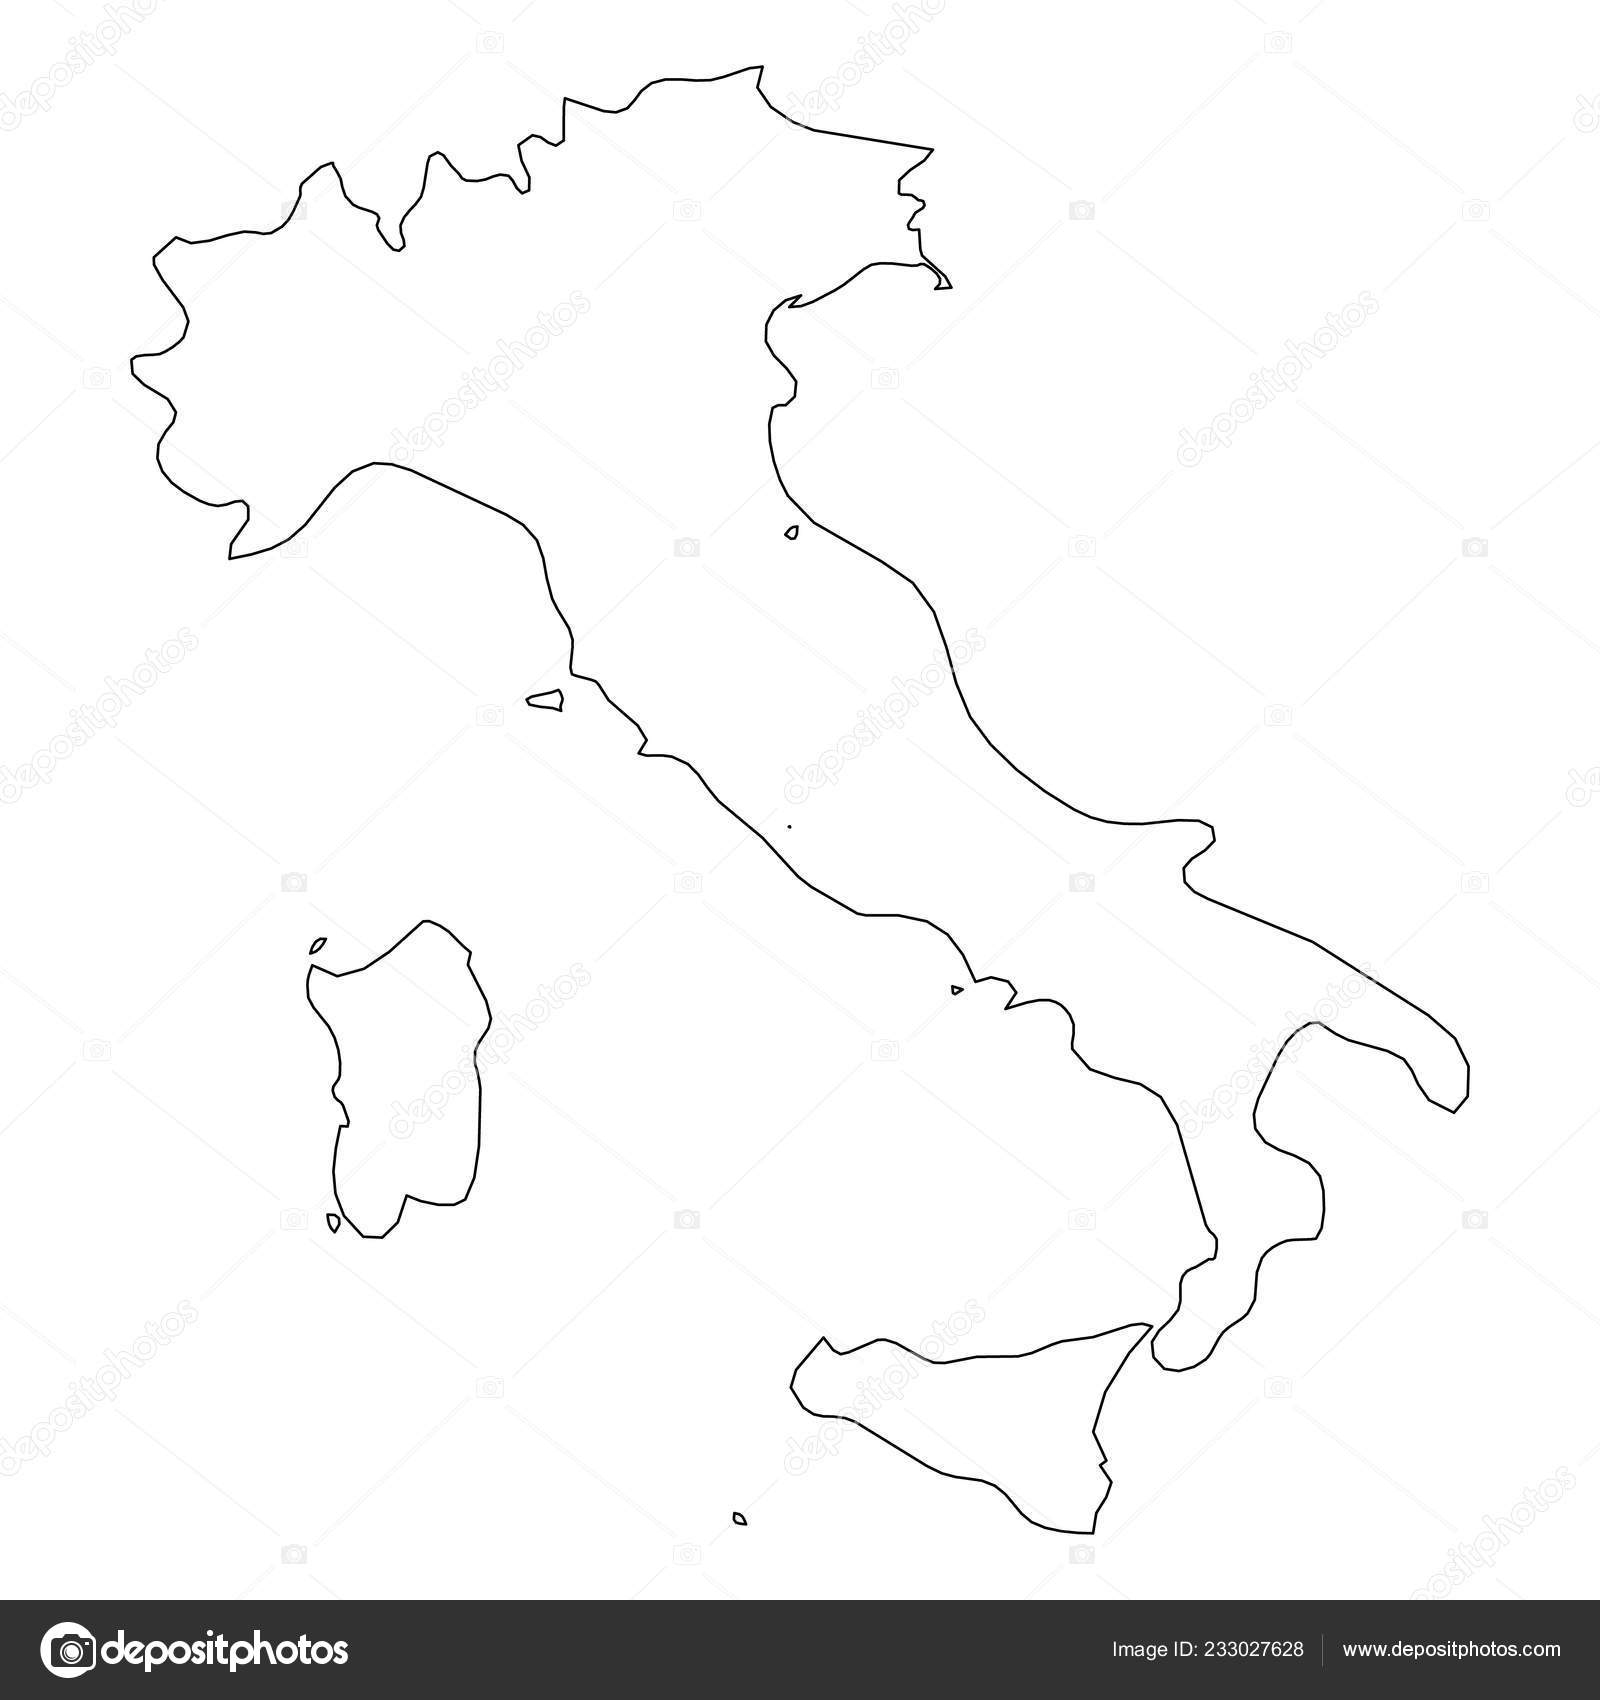 Map Of Italy Simple.Italy Solid Black Outline Border Map Of Country Area Simple Flat